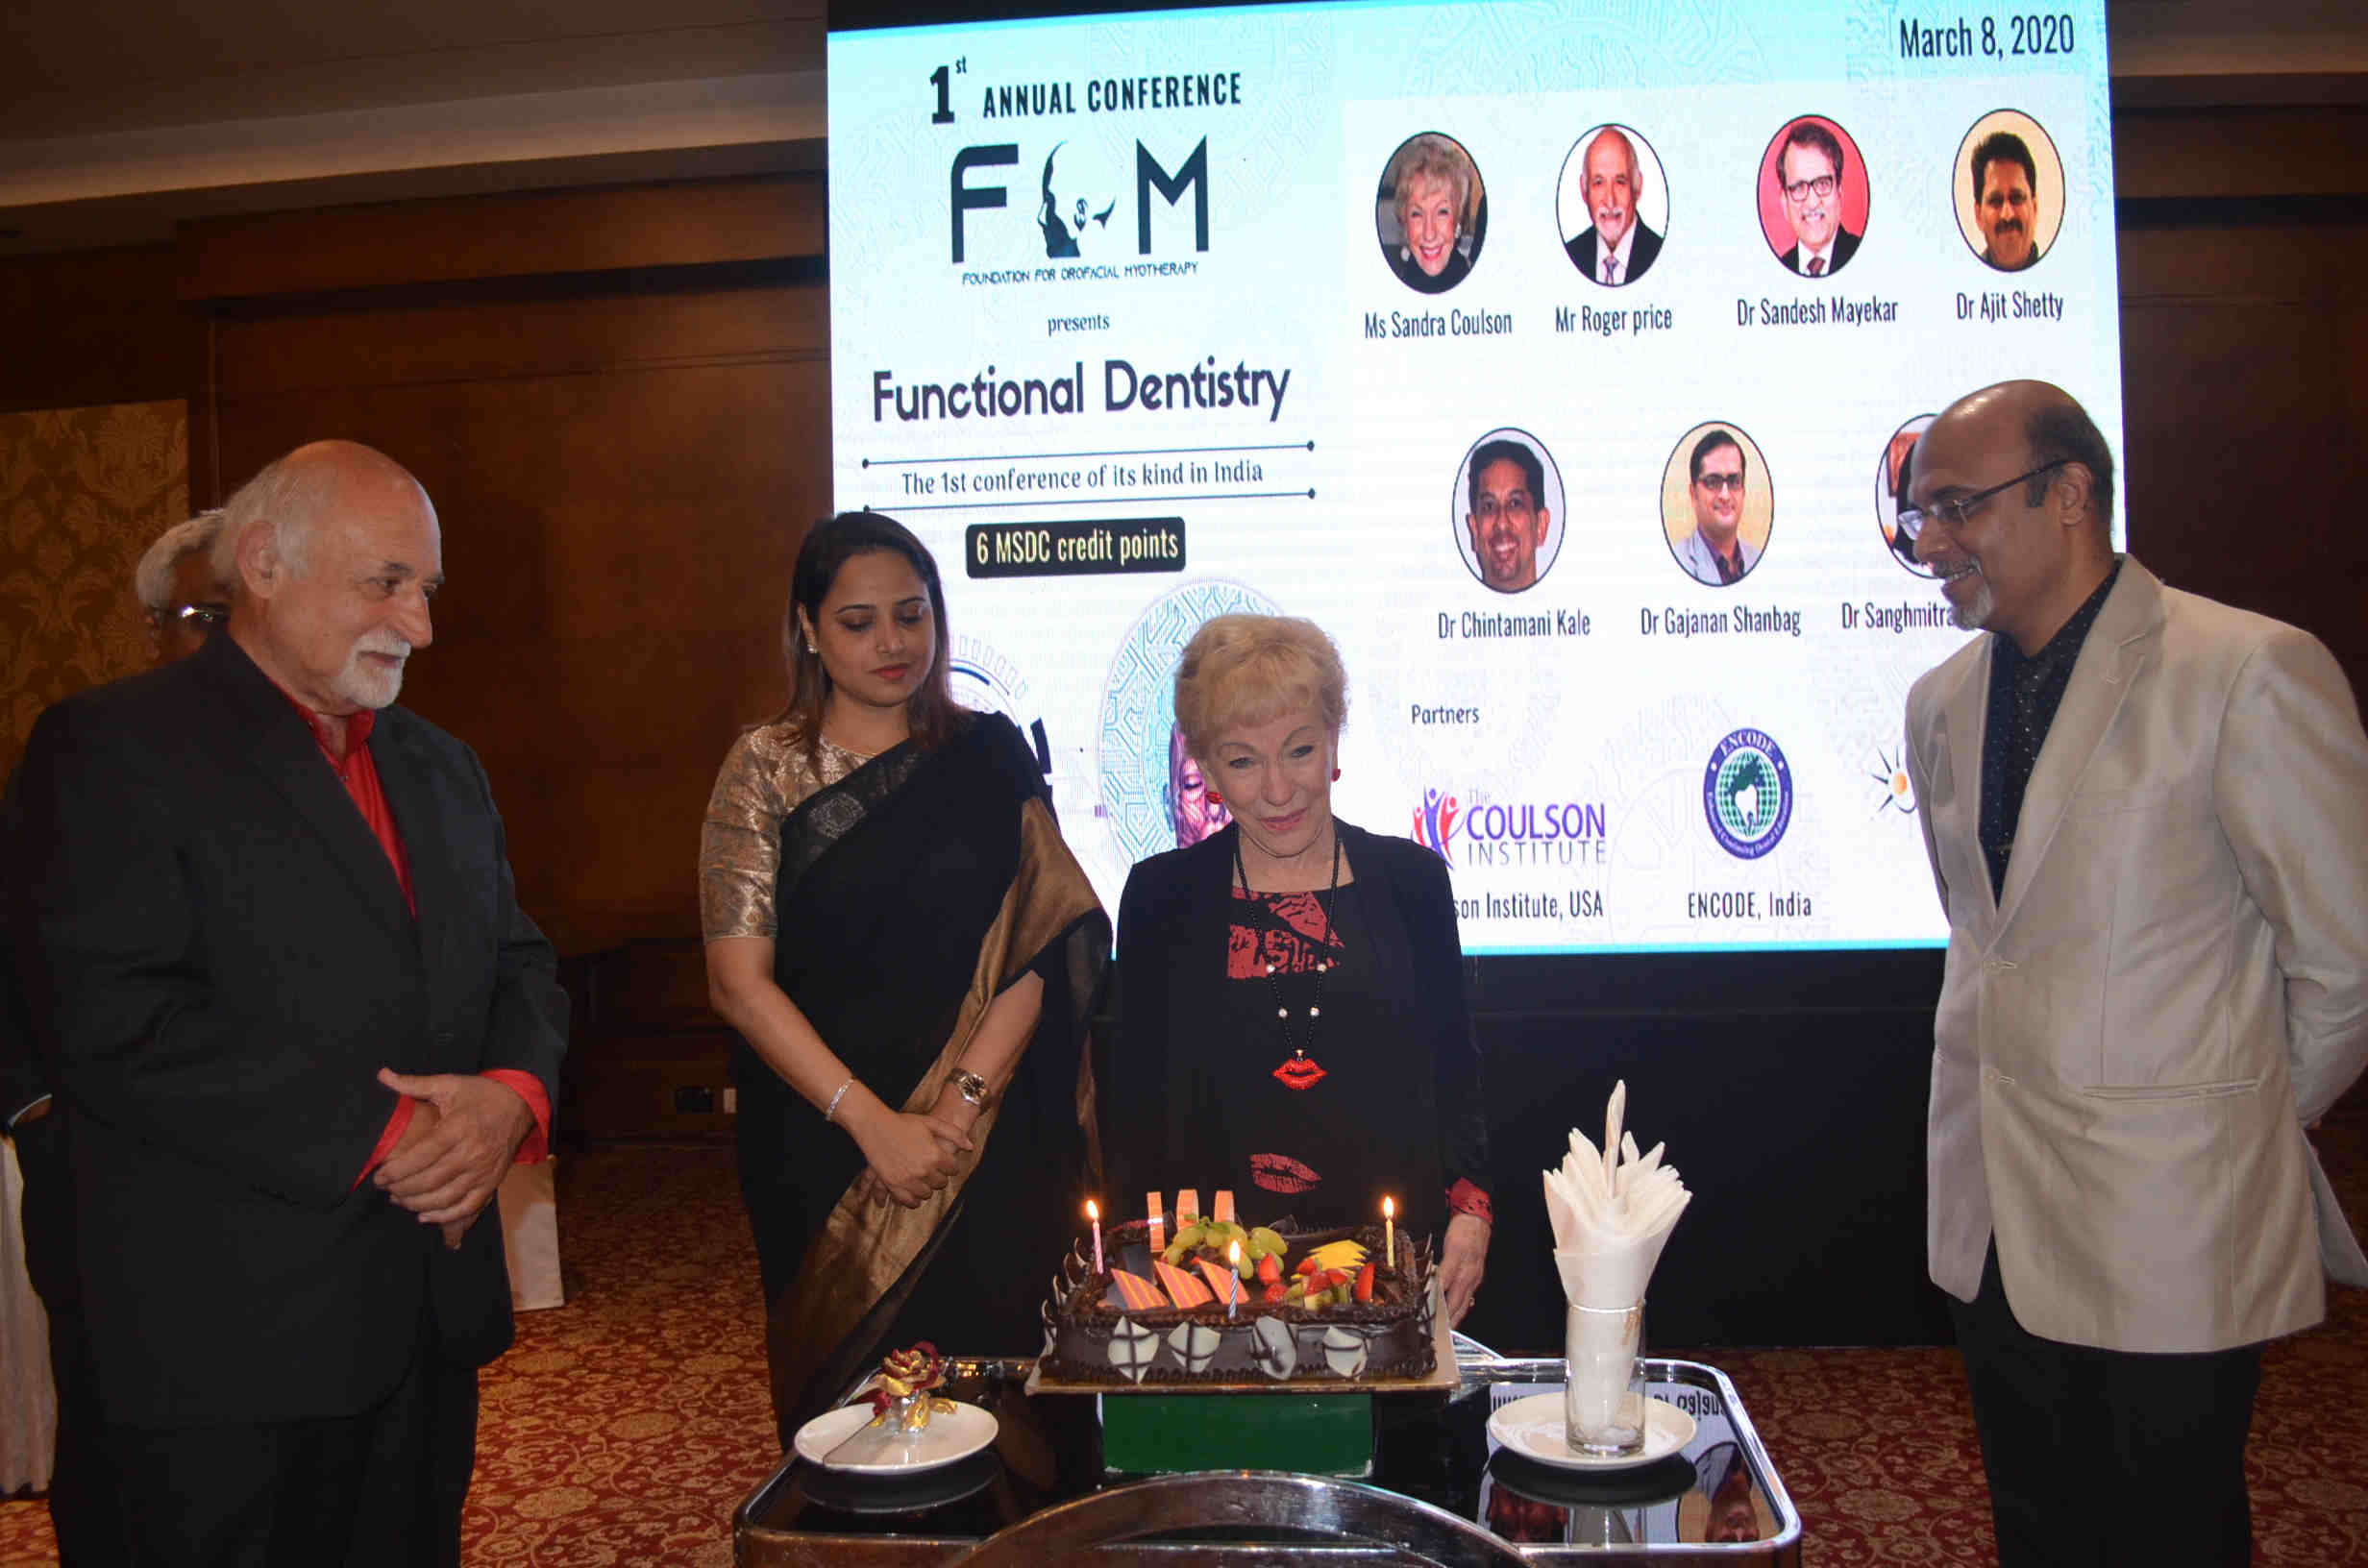 Functional Dentistry: The First Conference of its kind in India